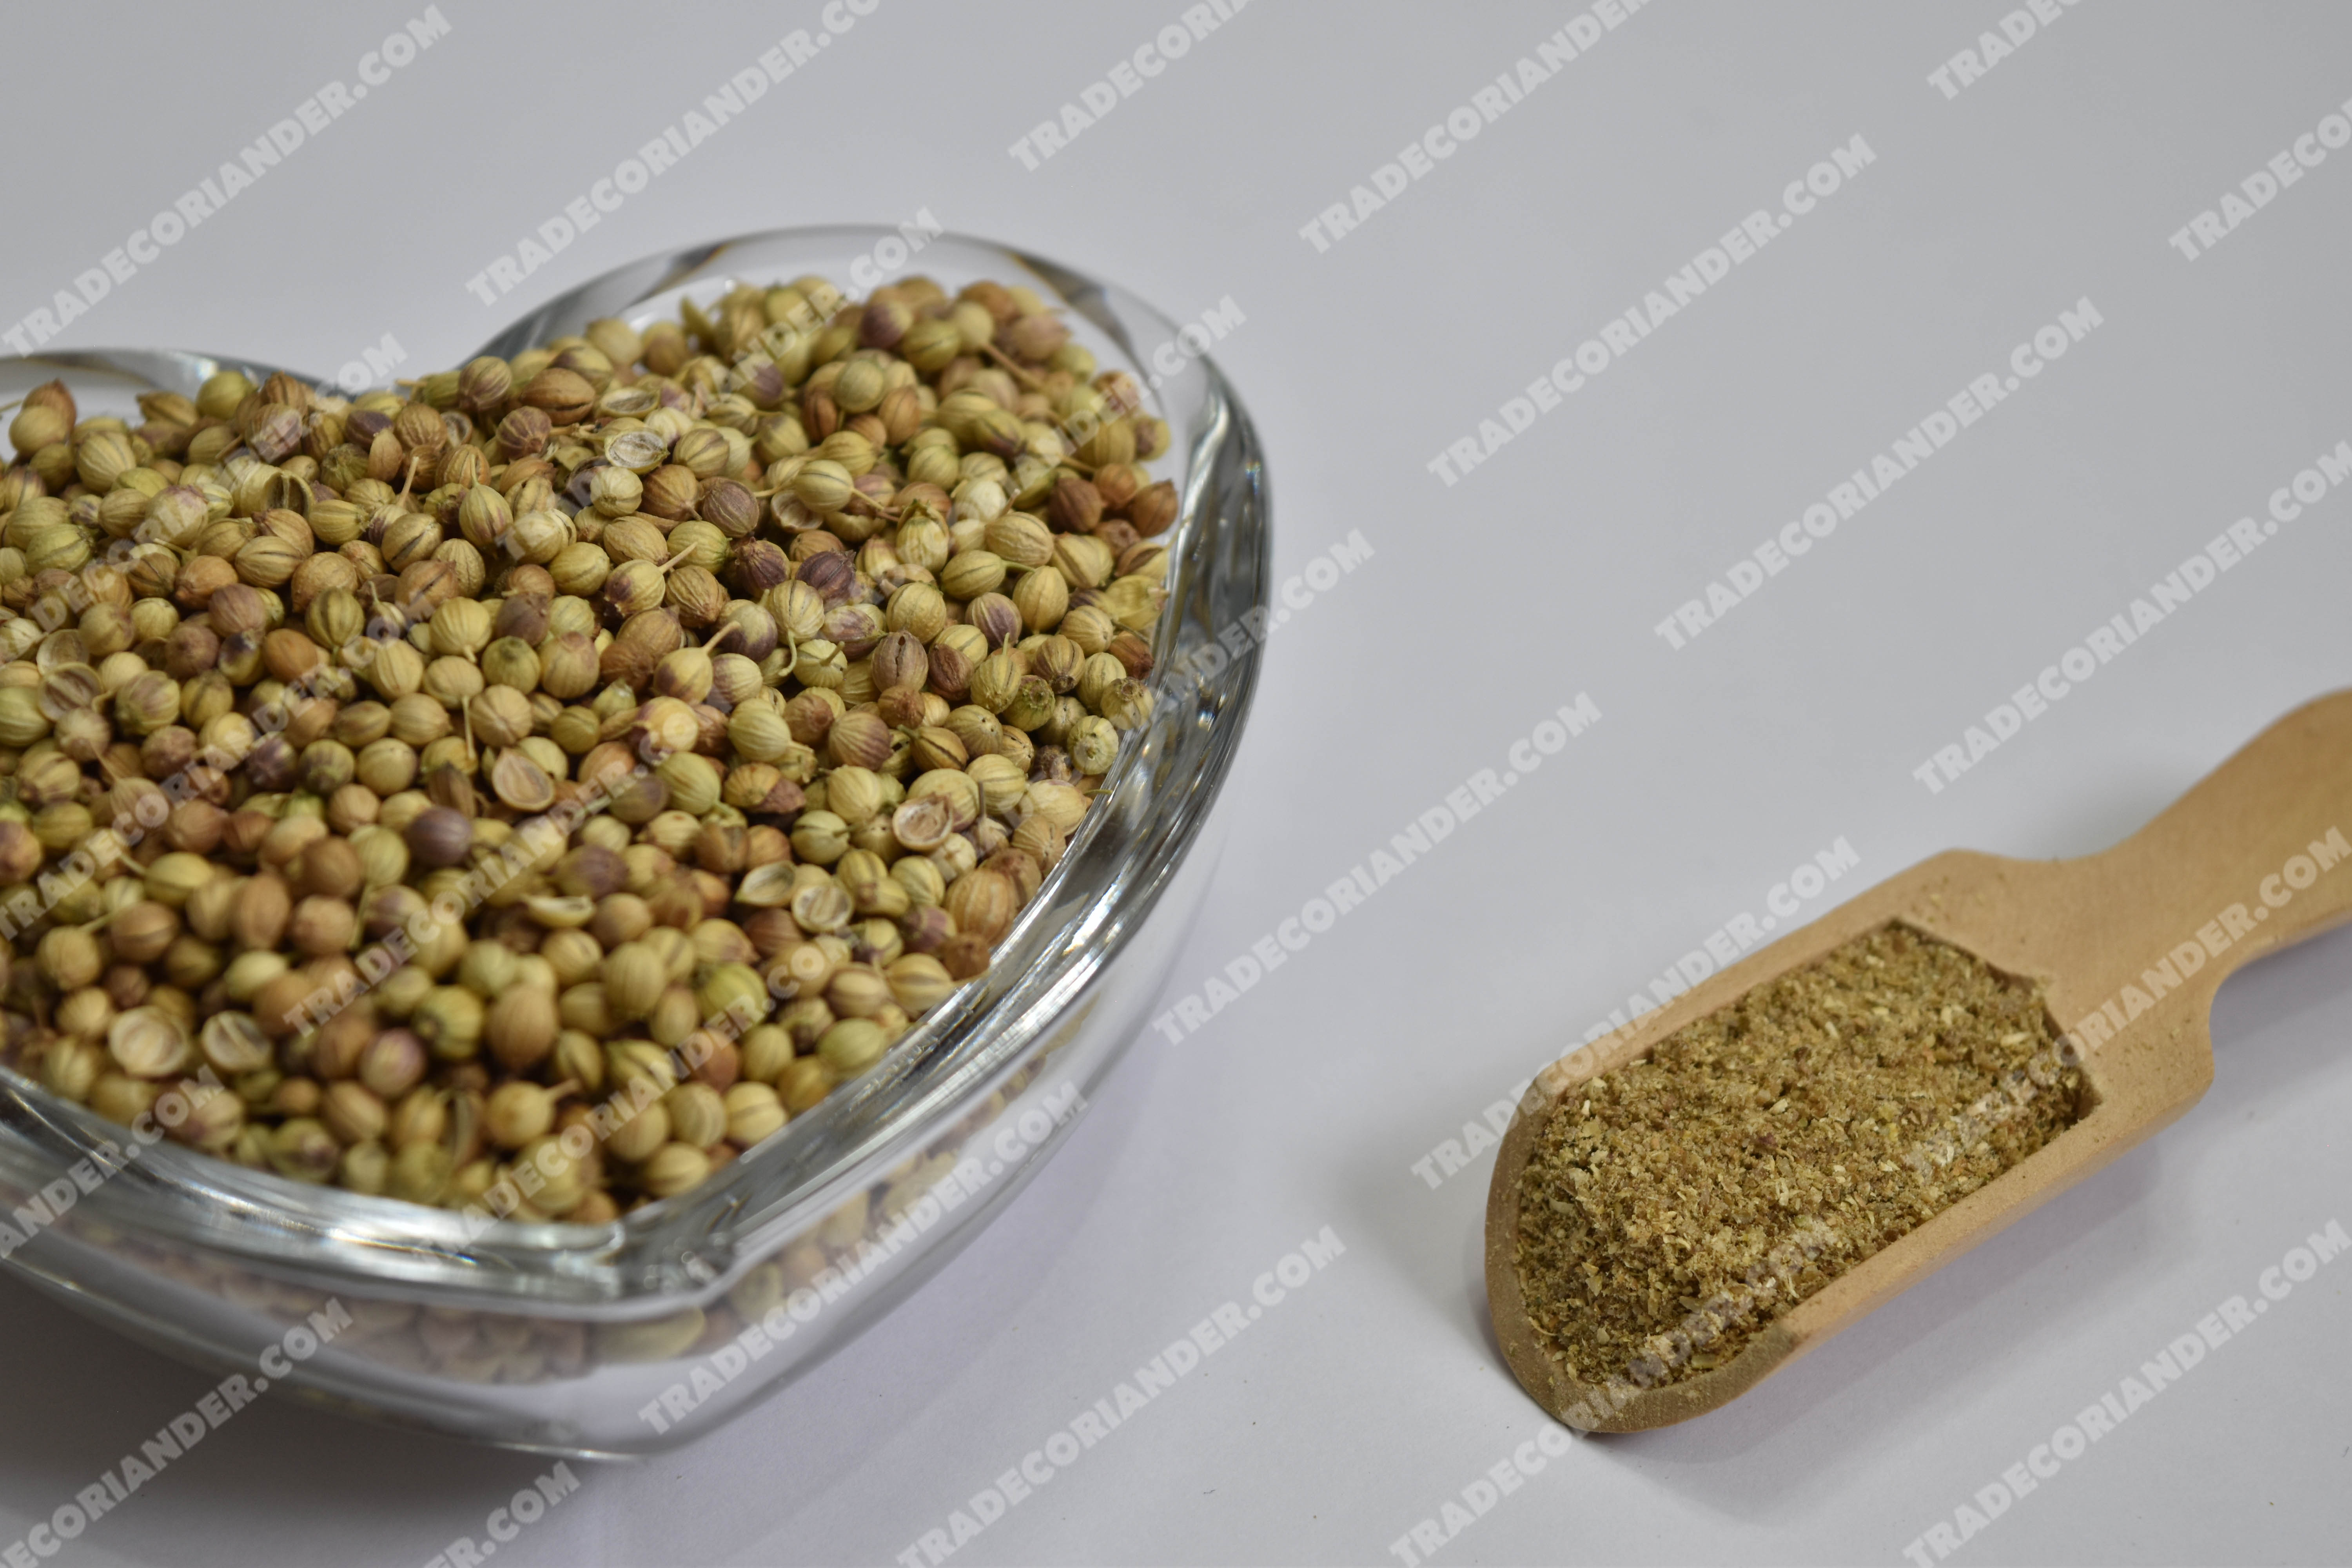 How can I Find Wholesalers of Coriander seed Spice?